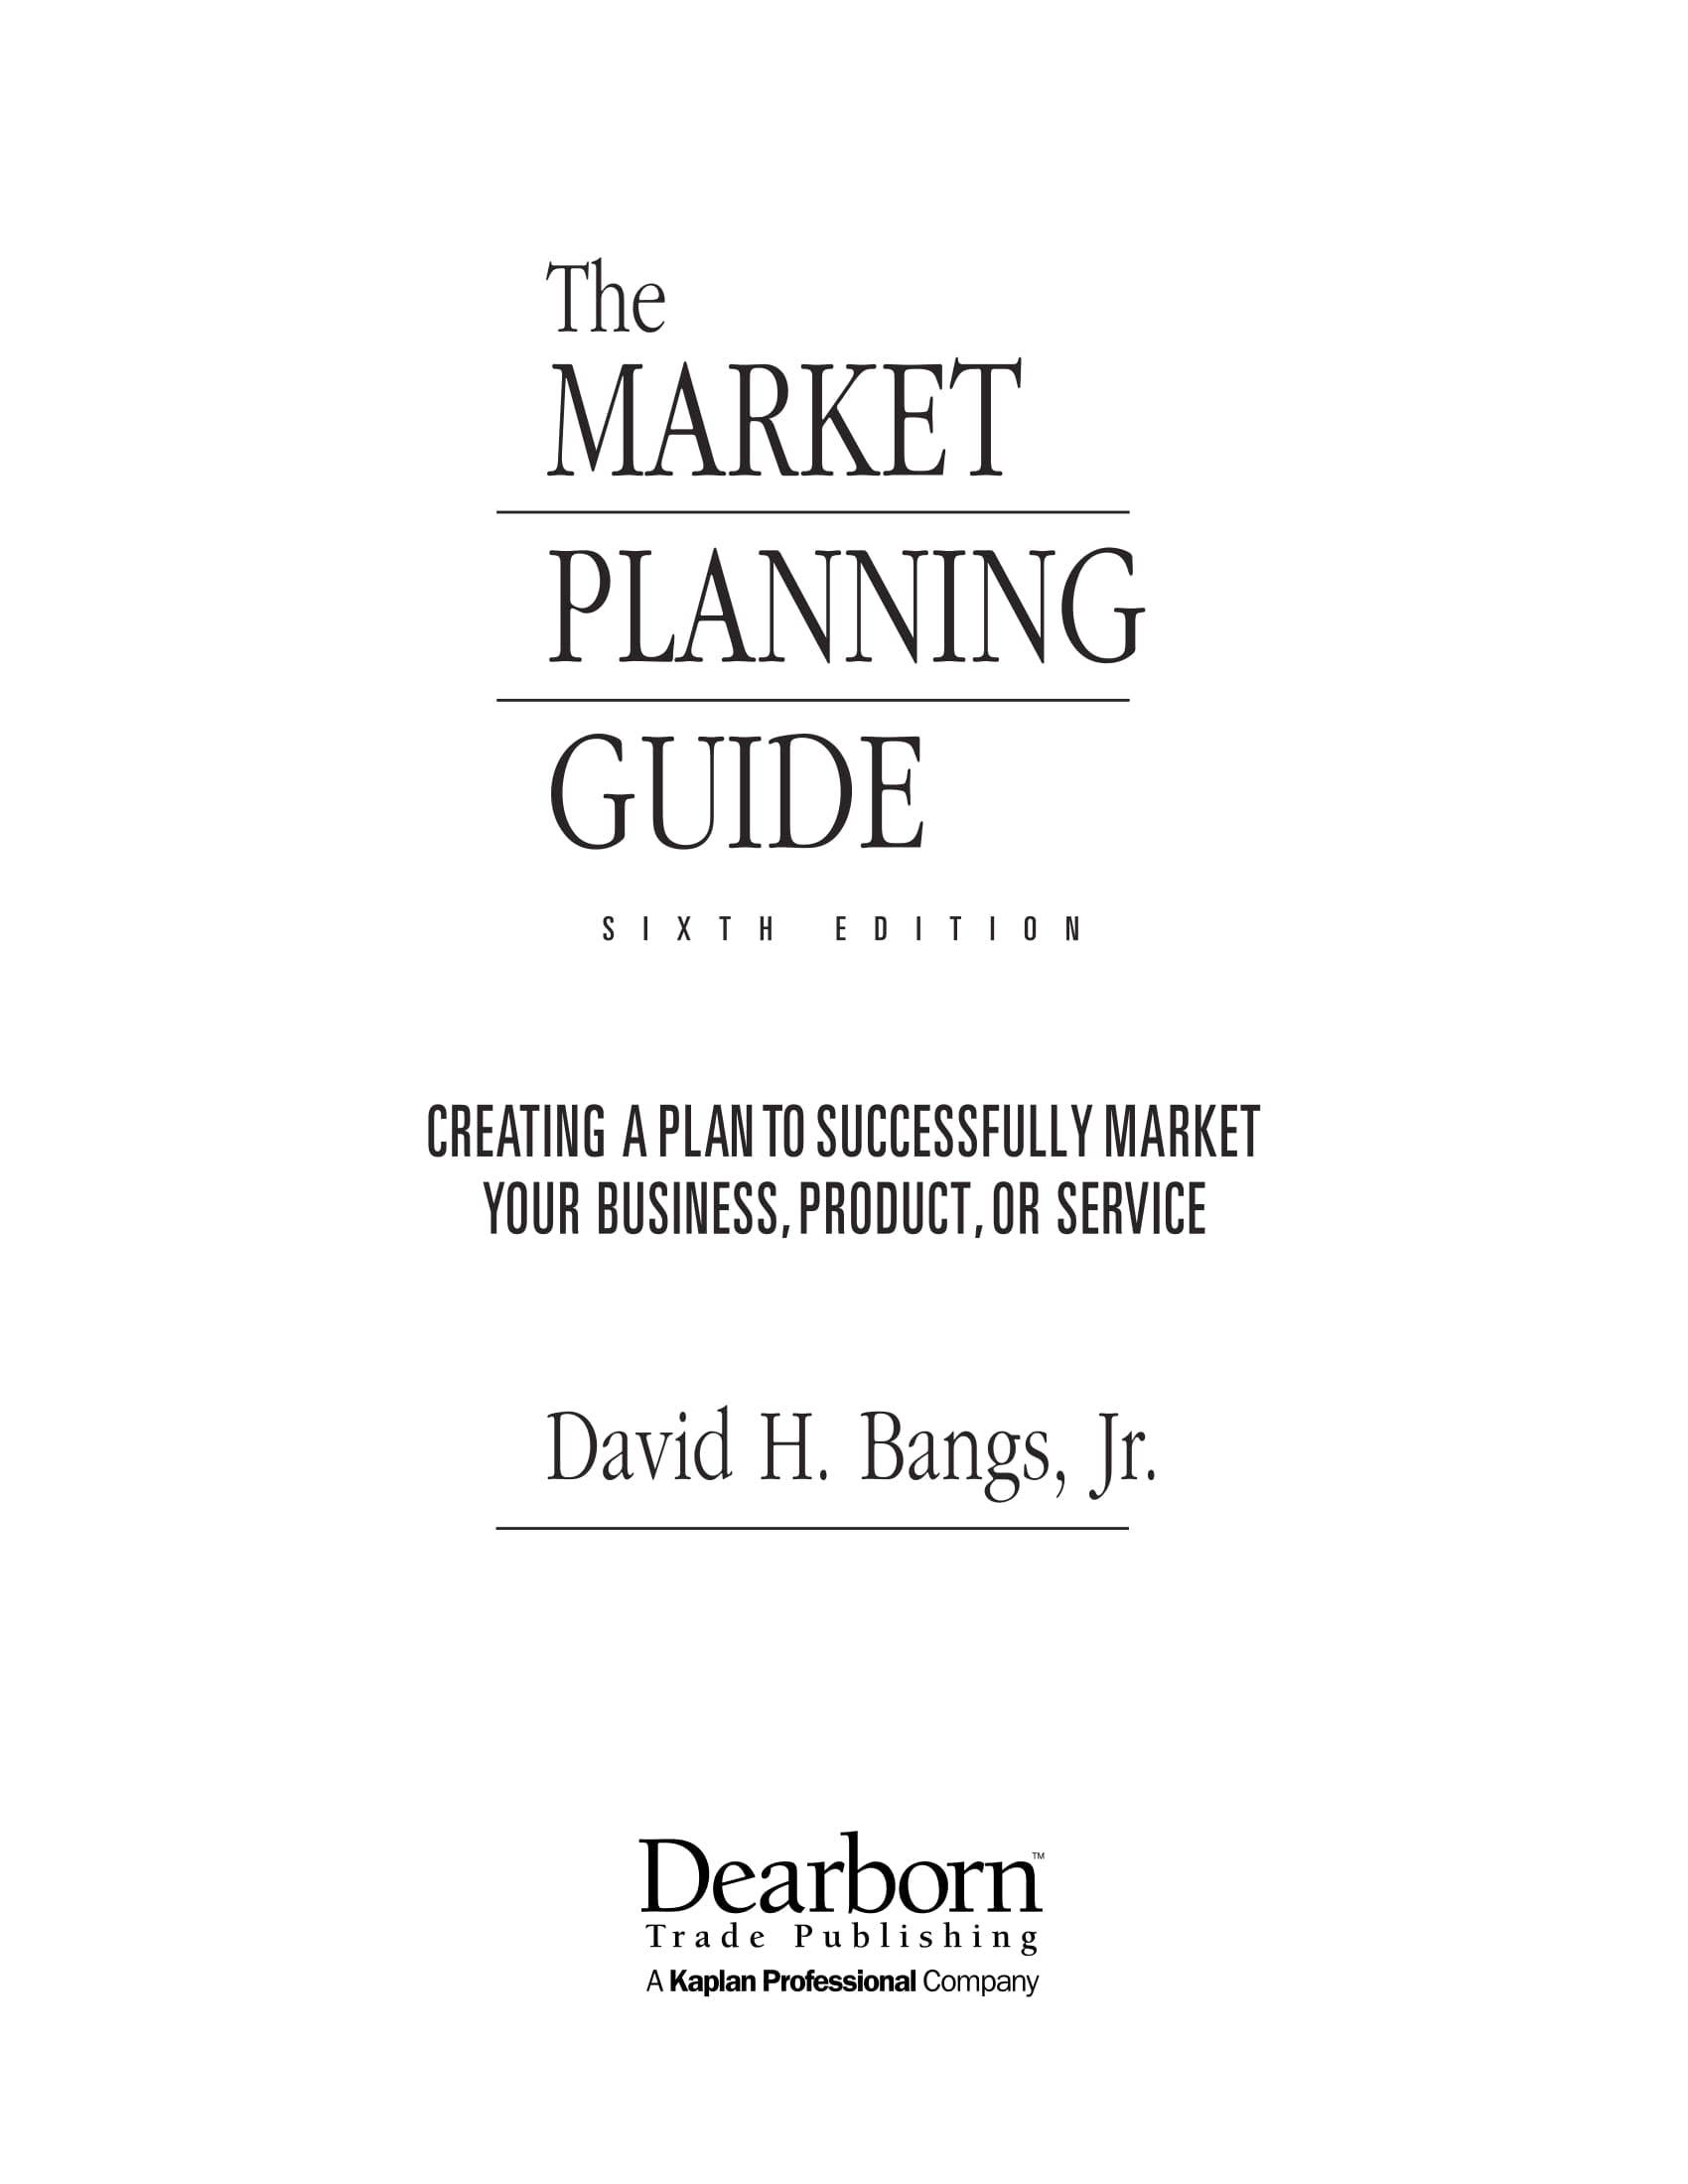 one page marketing plan guide